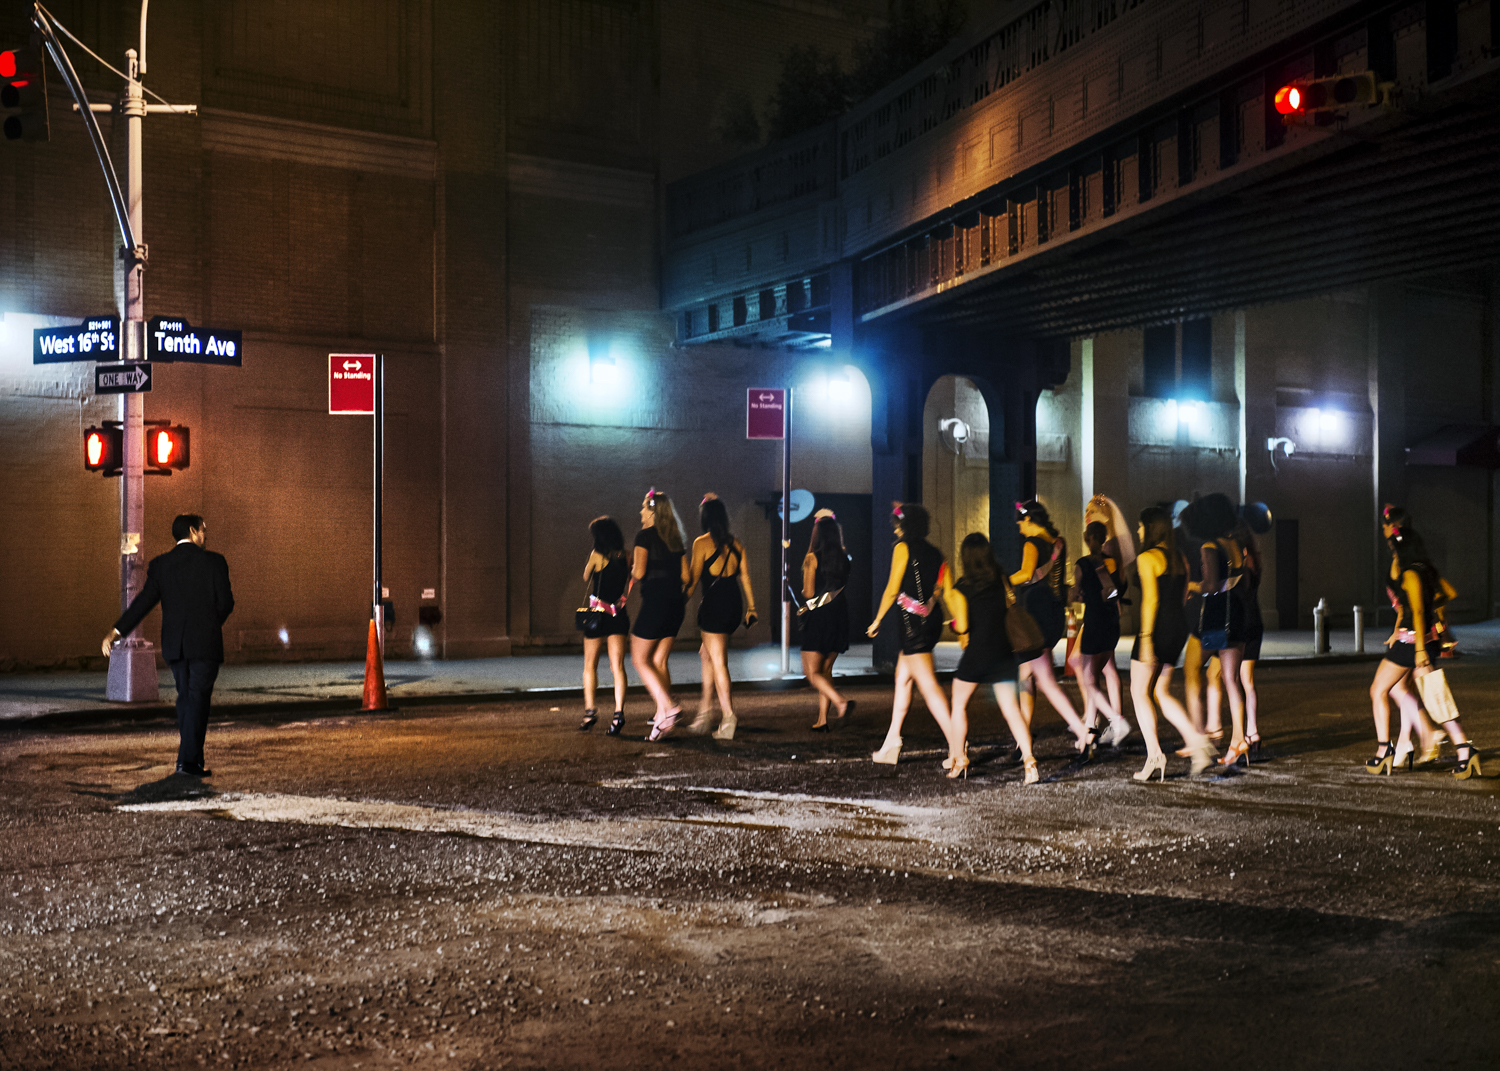 A bachelorette party passes by a man in the Meatpacking District in July 2012.